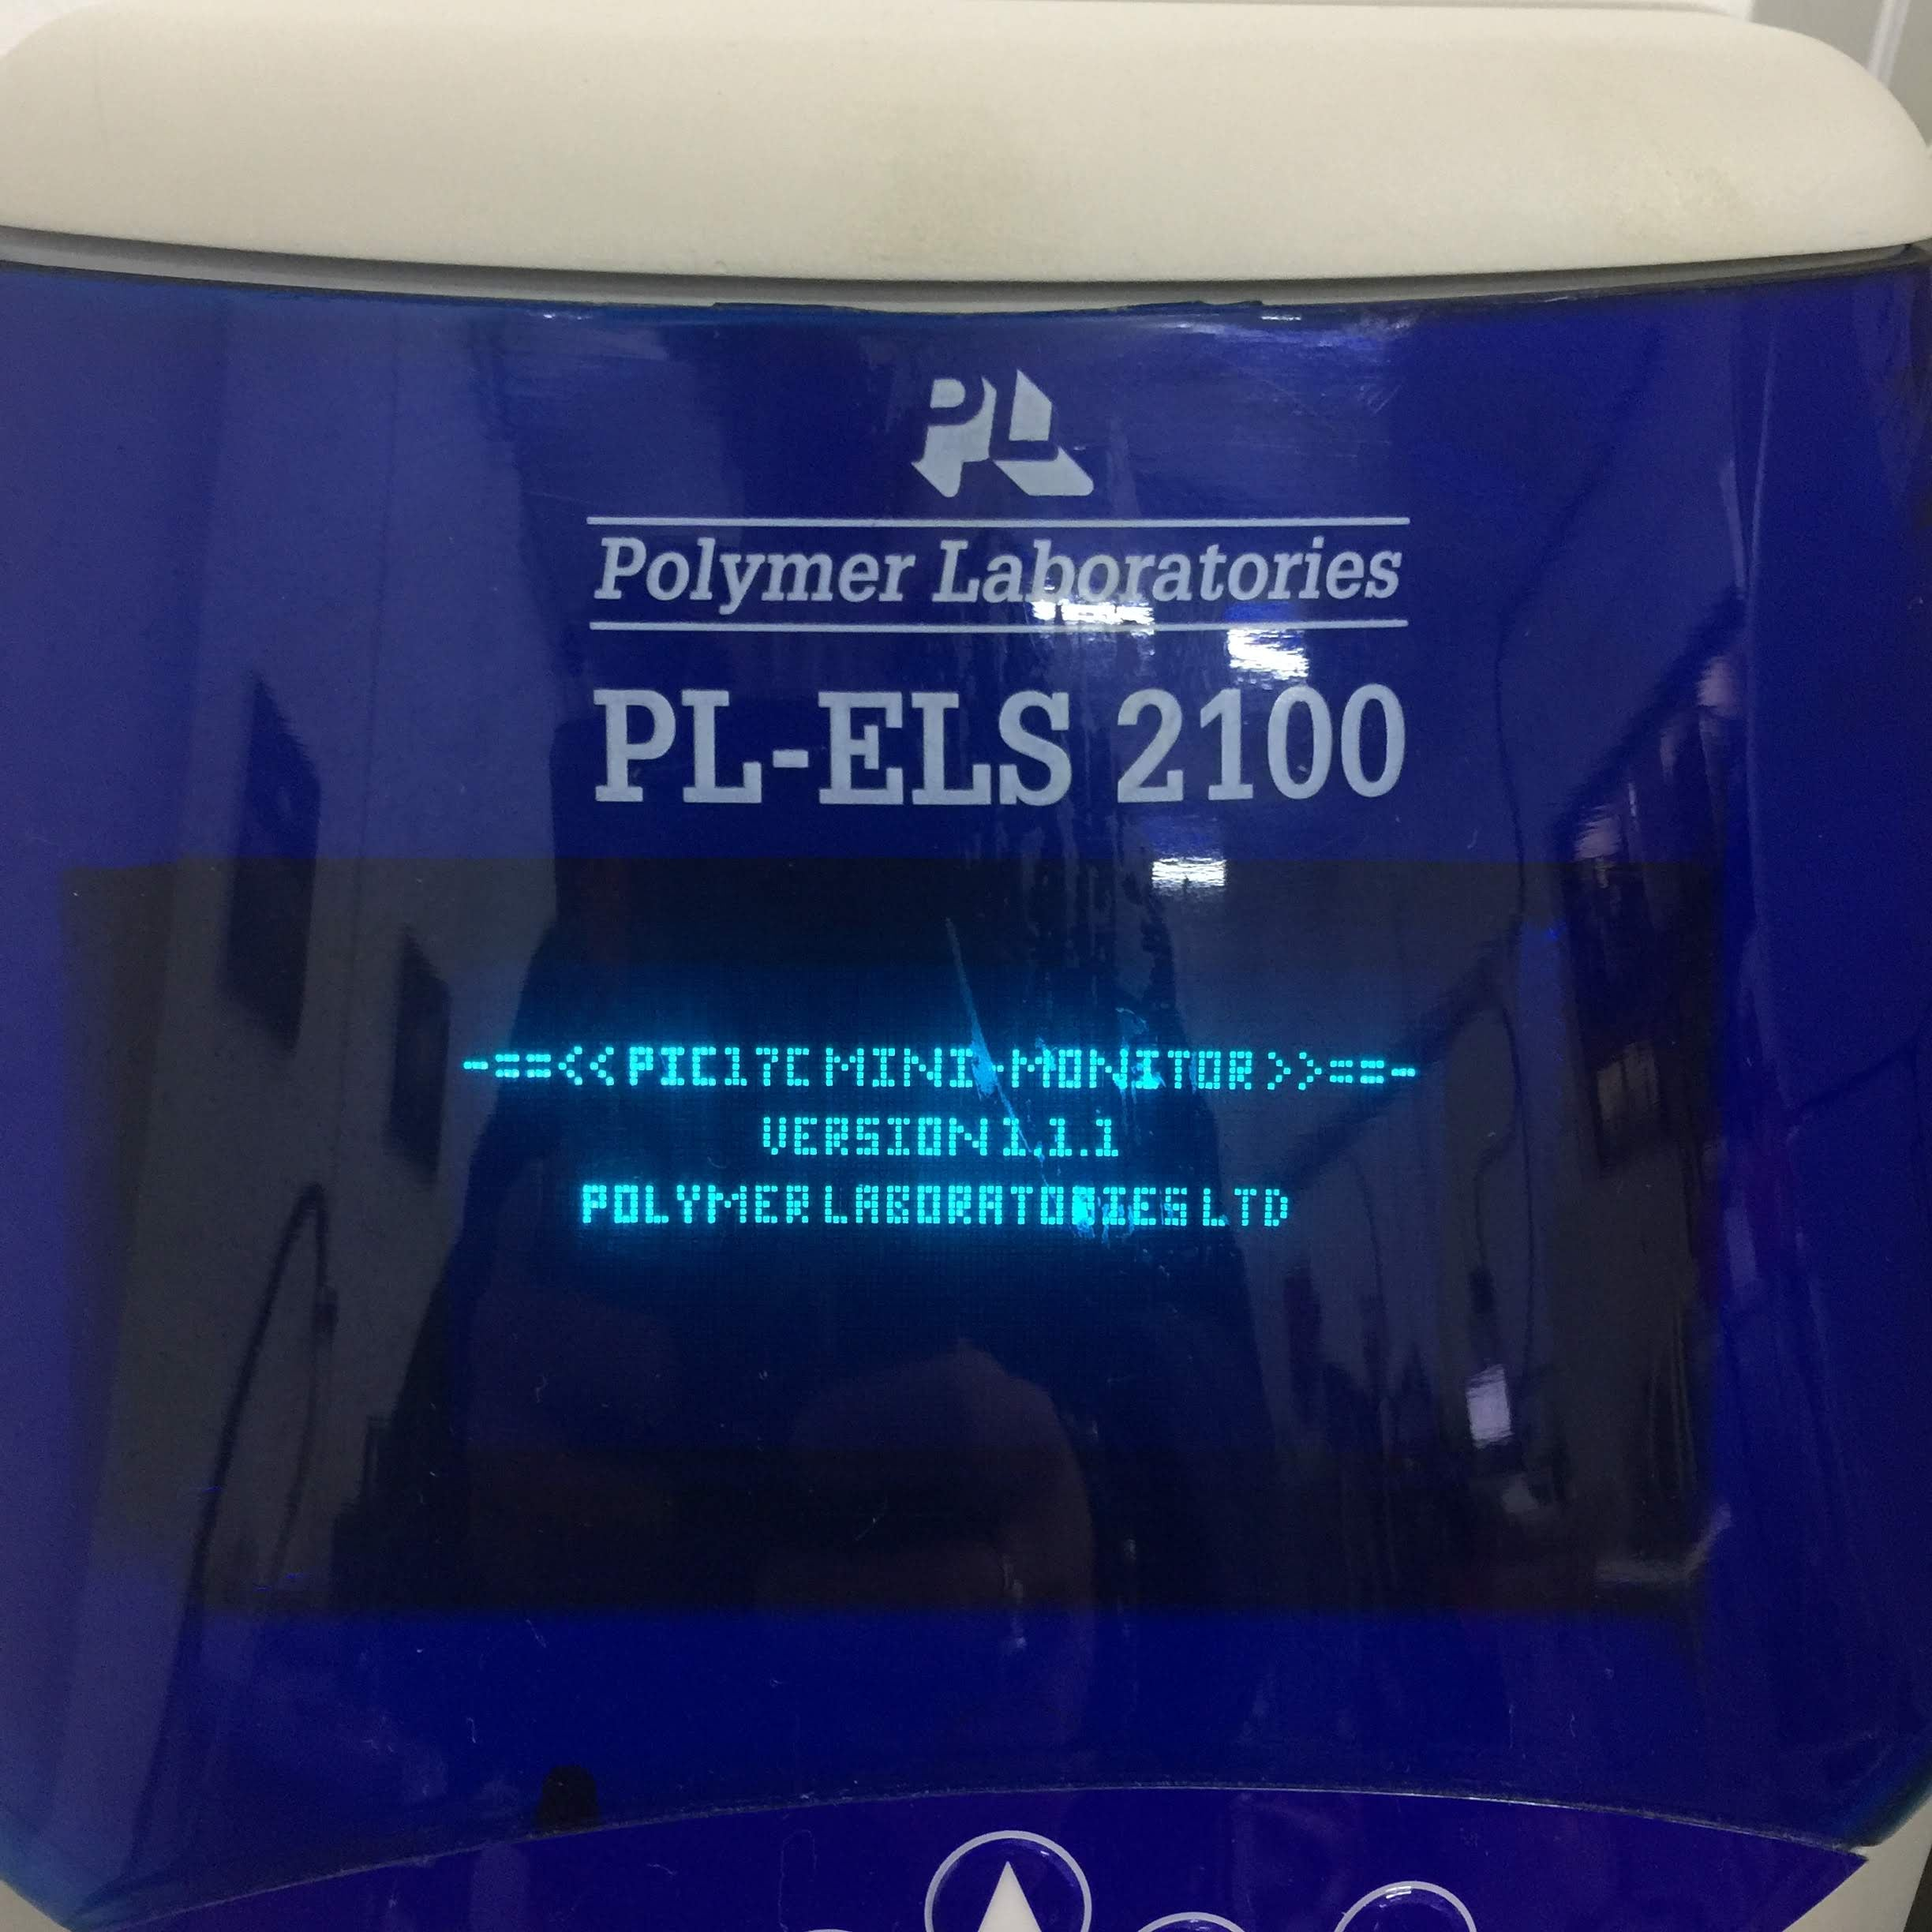 Polymer Laboratories PL-ELS 2100 (Evaporative Light Scatter Detector) with Dionex AS50 Autosampler and UCI-100 Universal Chromatography Interface